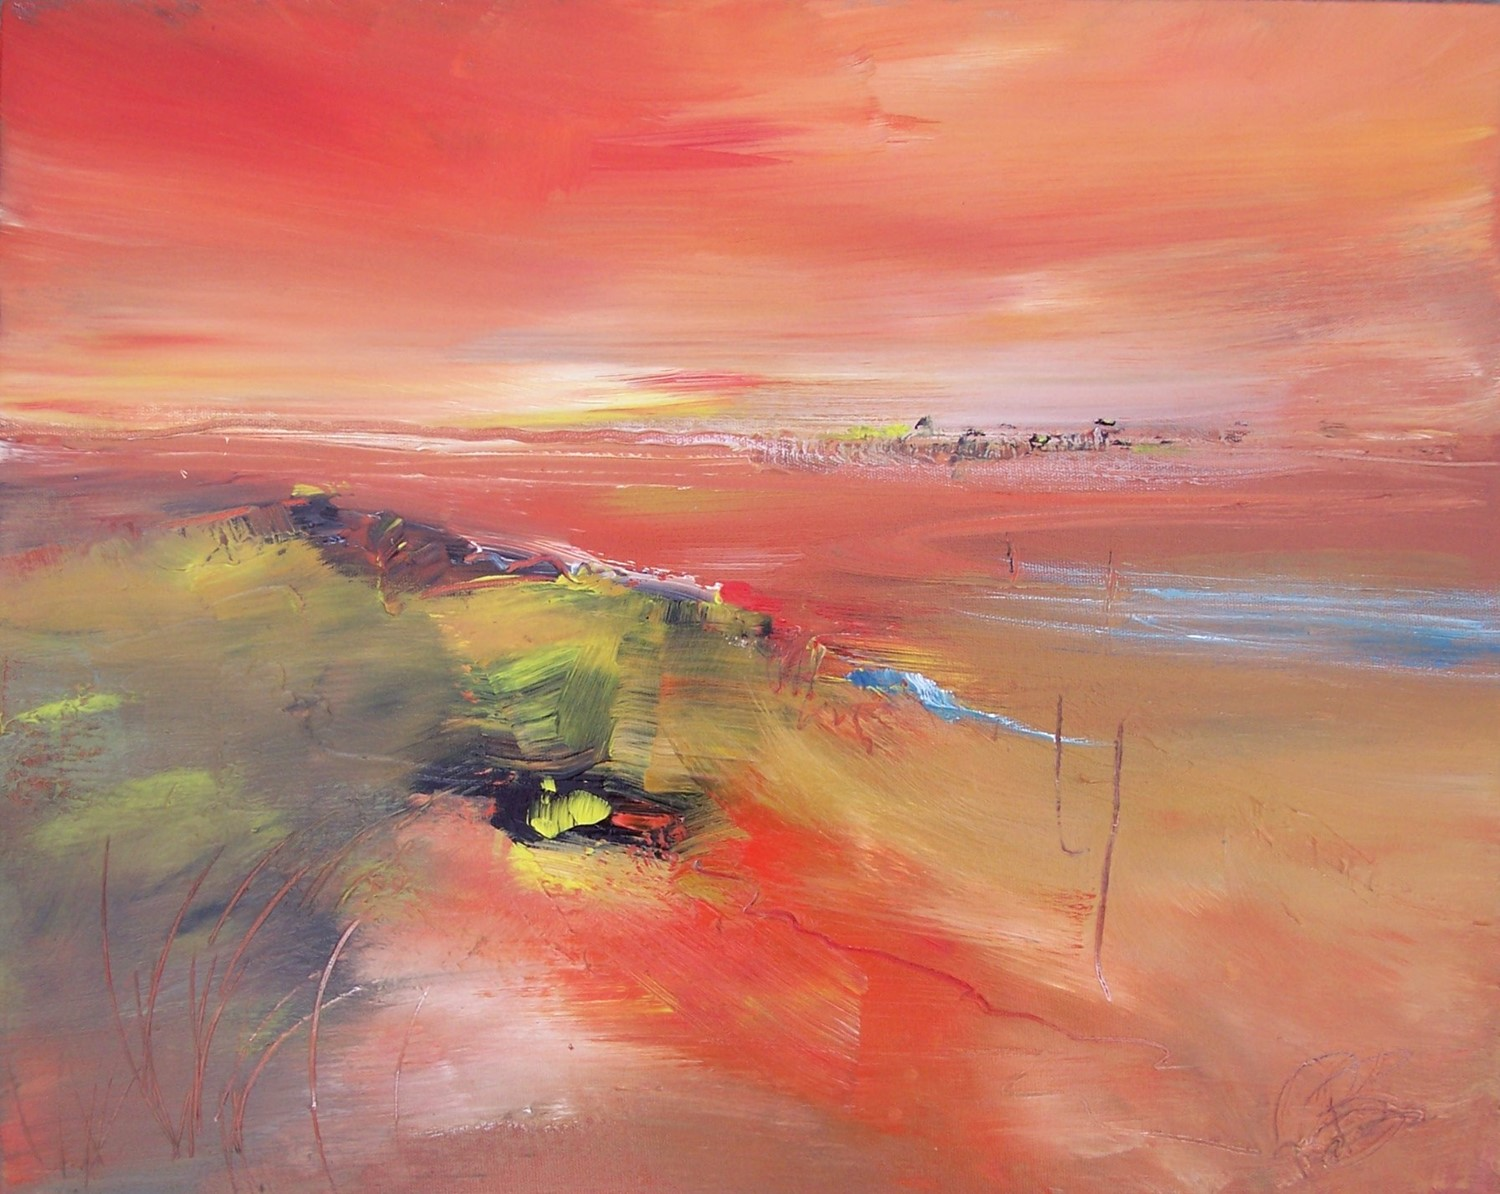 'Warm Evening' by artist Rosanne Barr